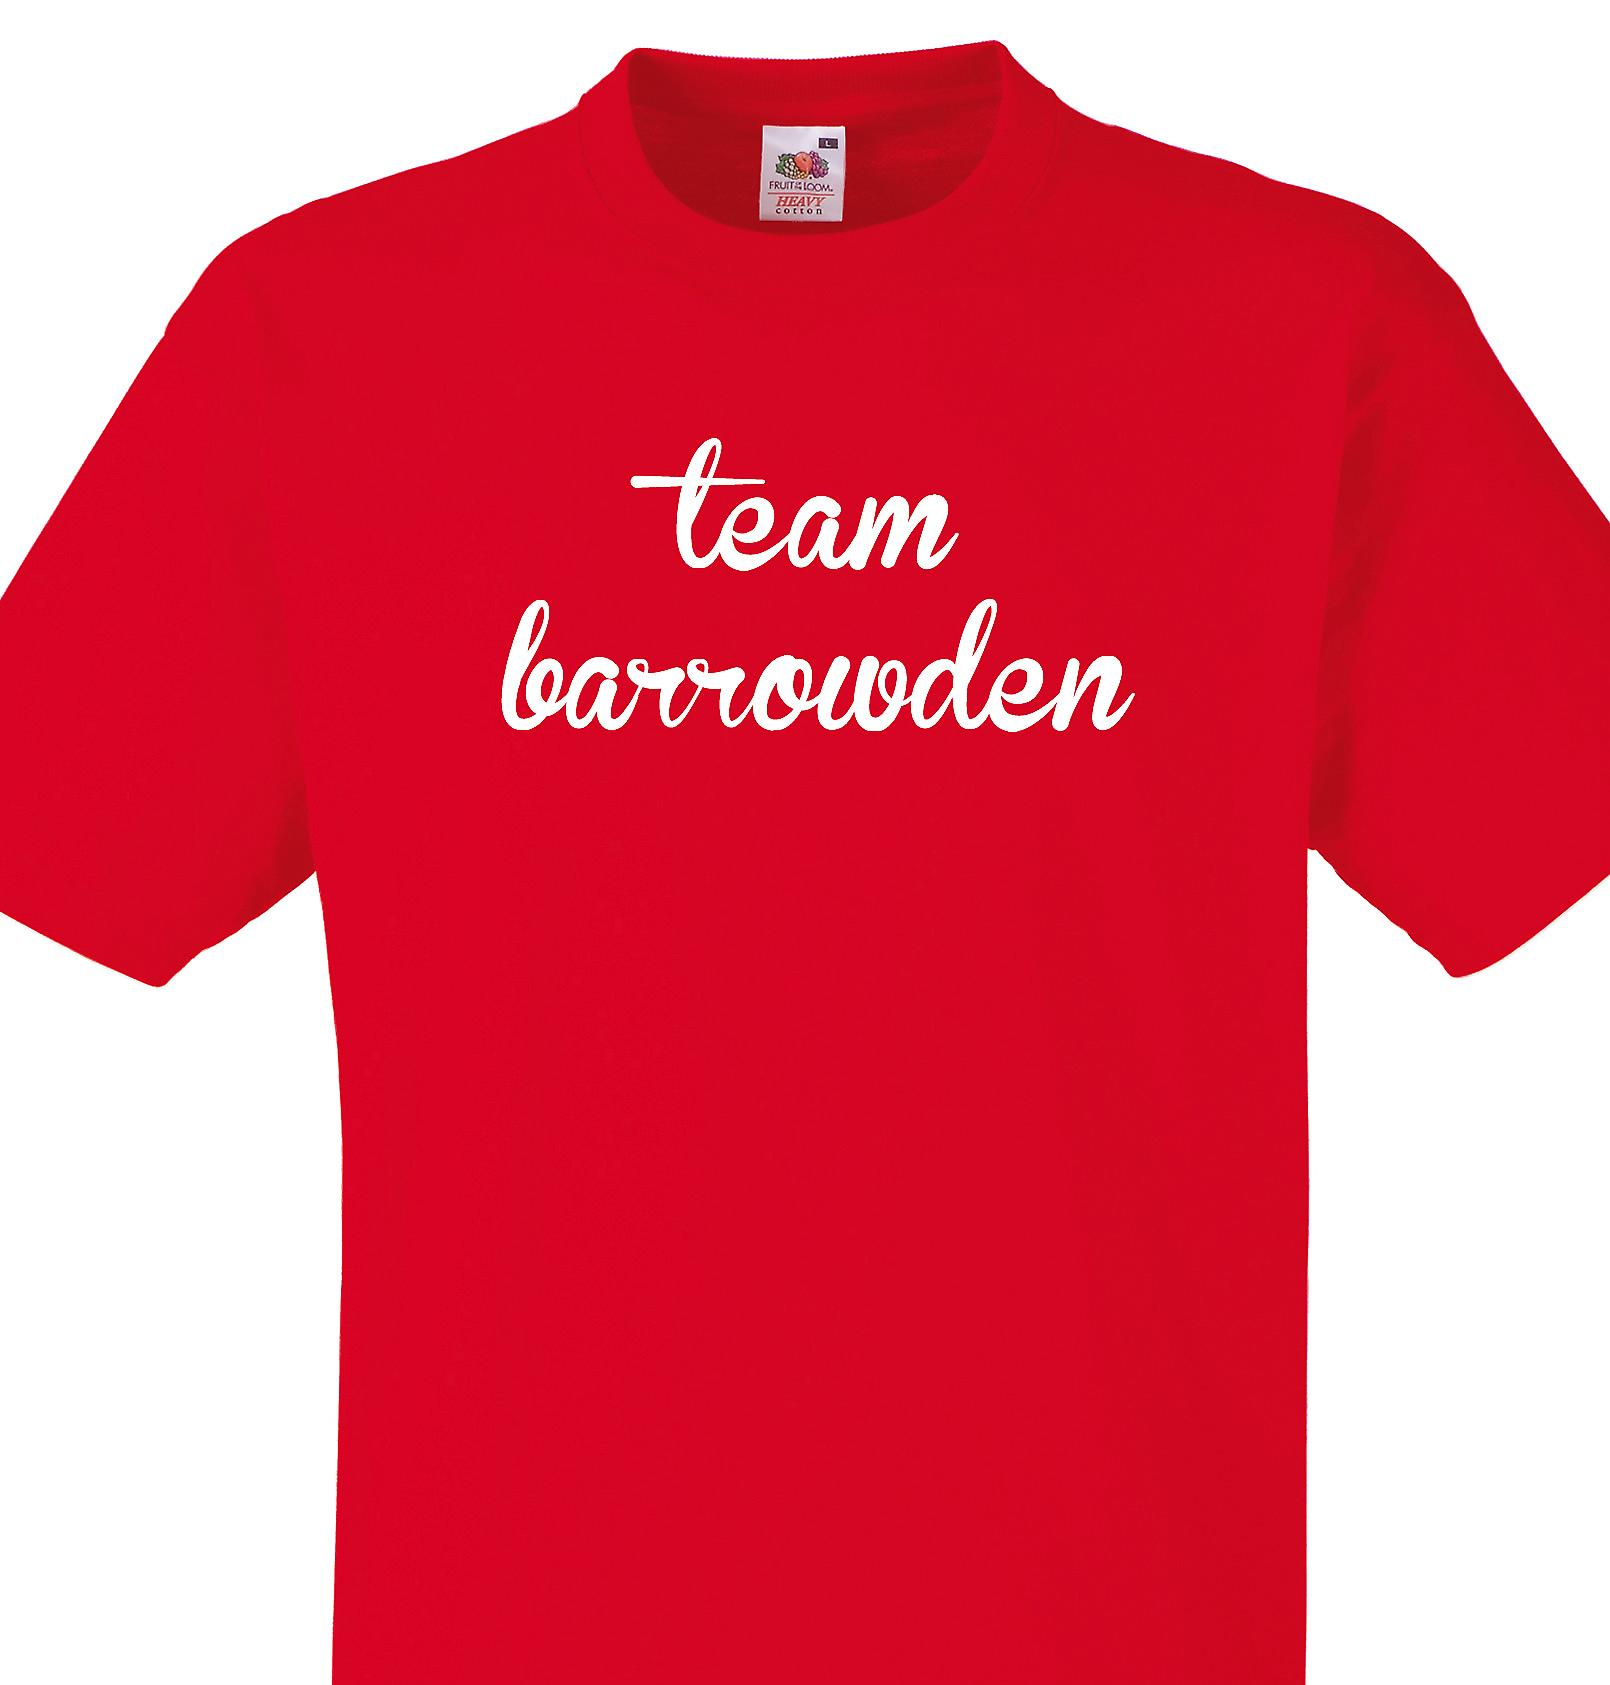 Team Barrowden Red T shirt